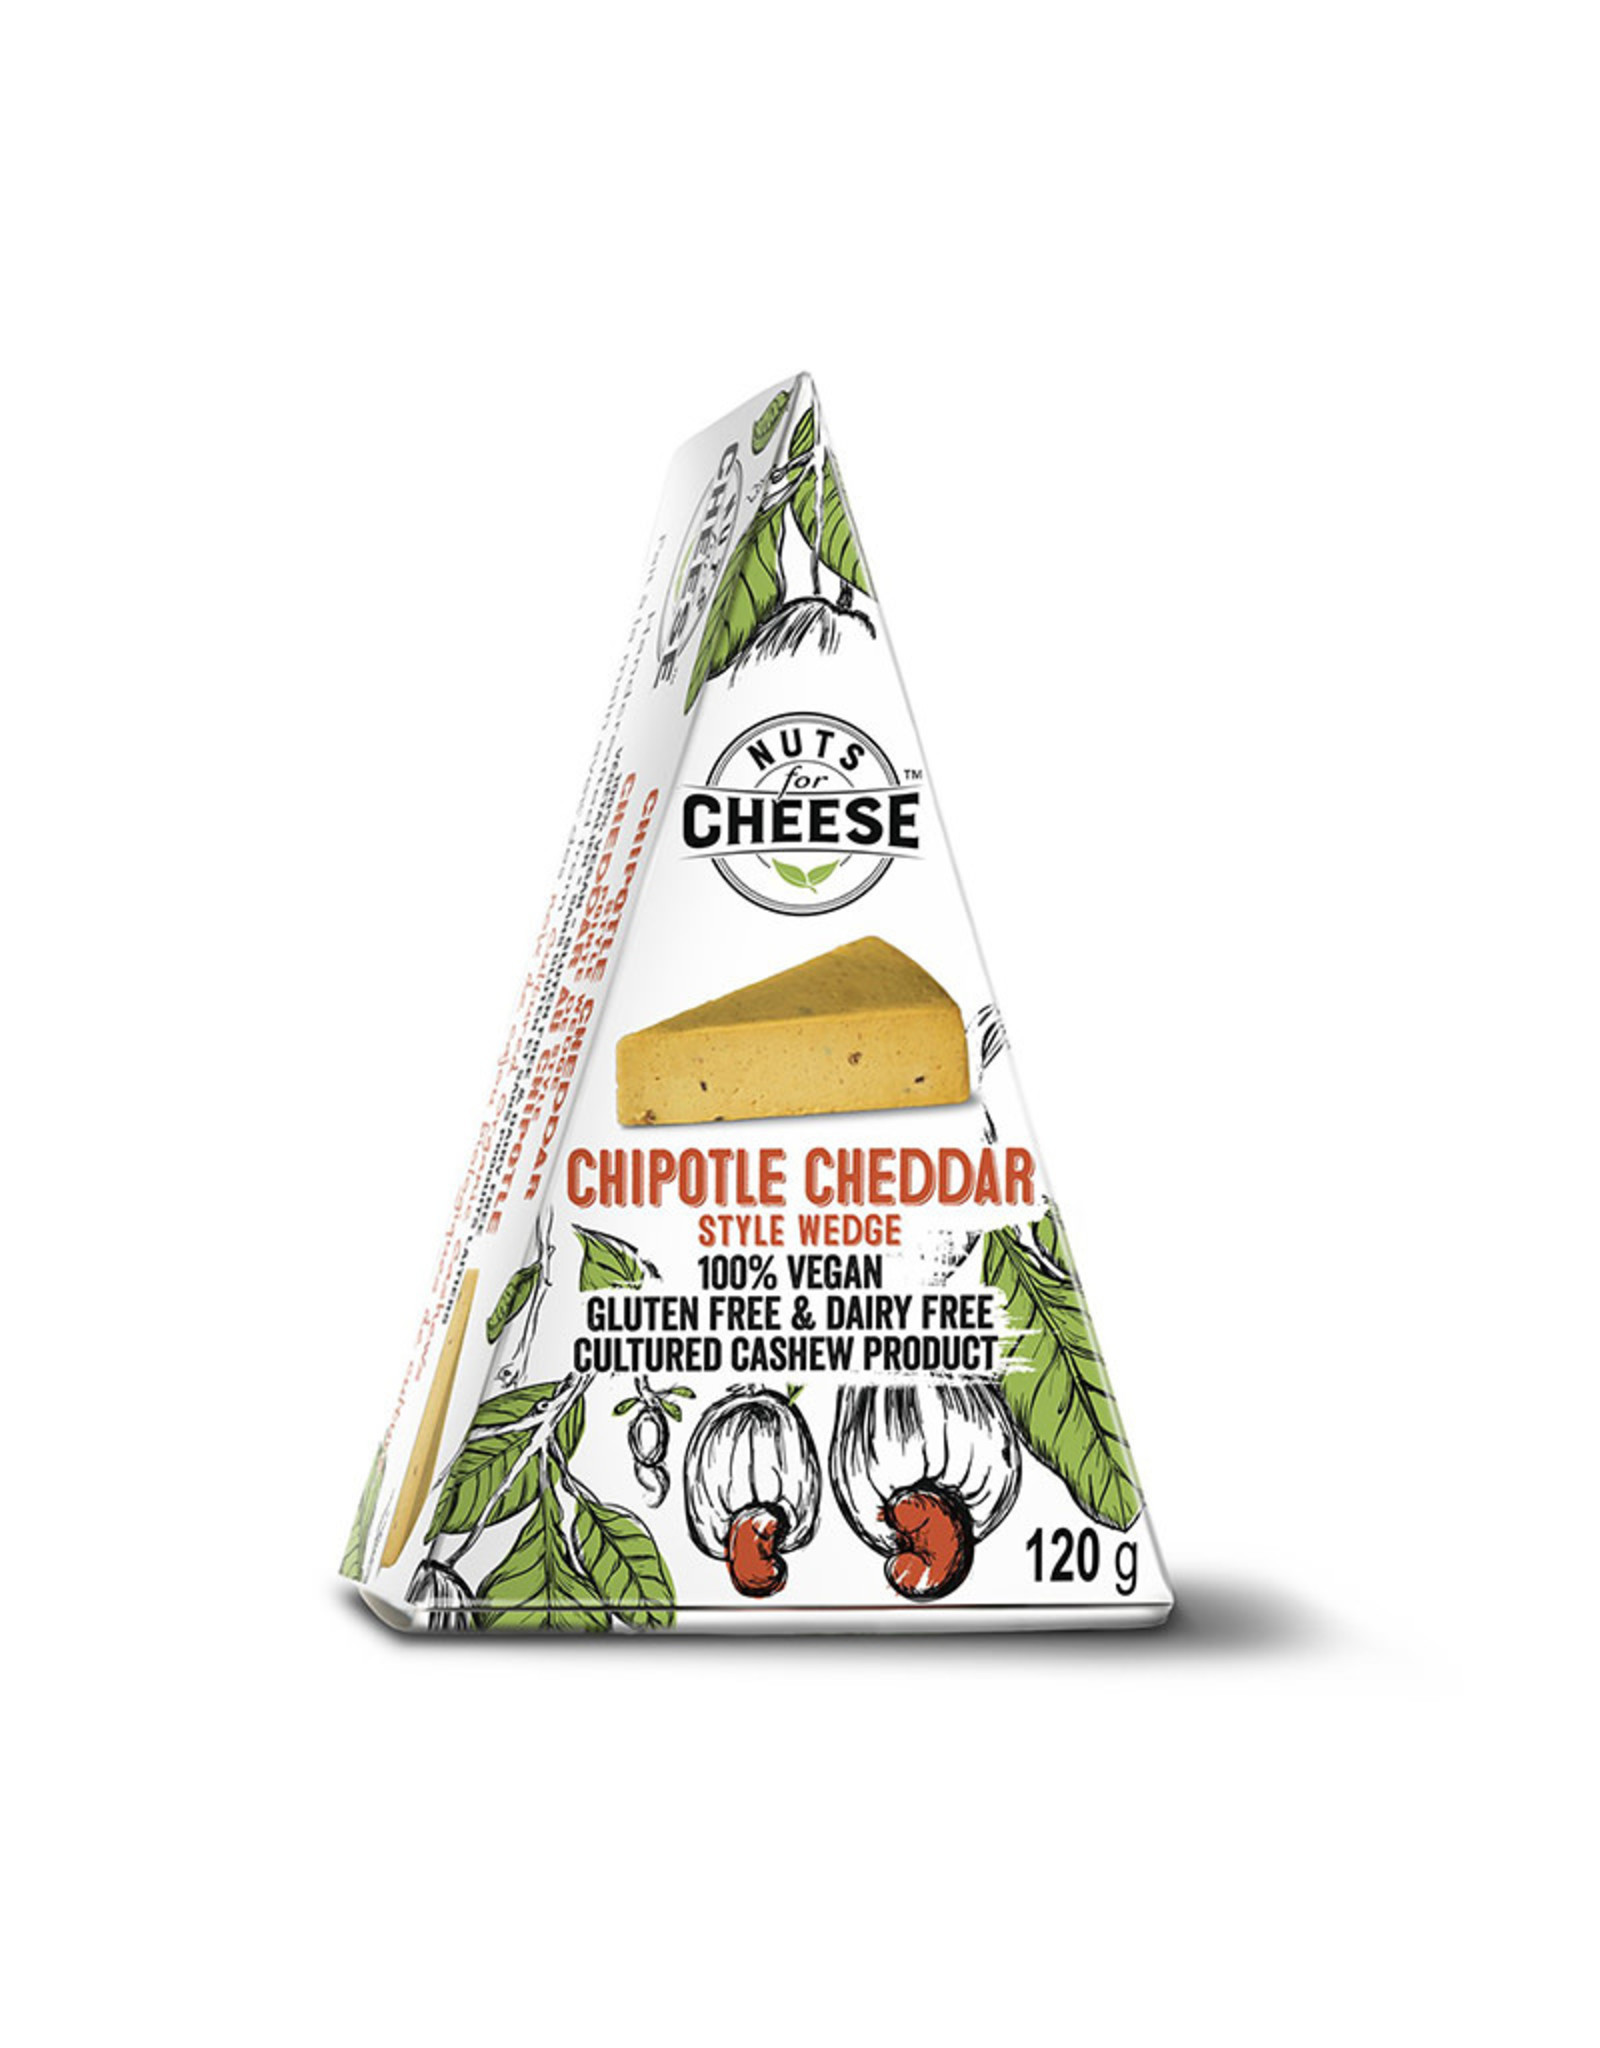 Nuts for Cheese Nuts For Cheese - Chipotle Cheddar (120g)